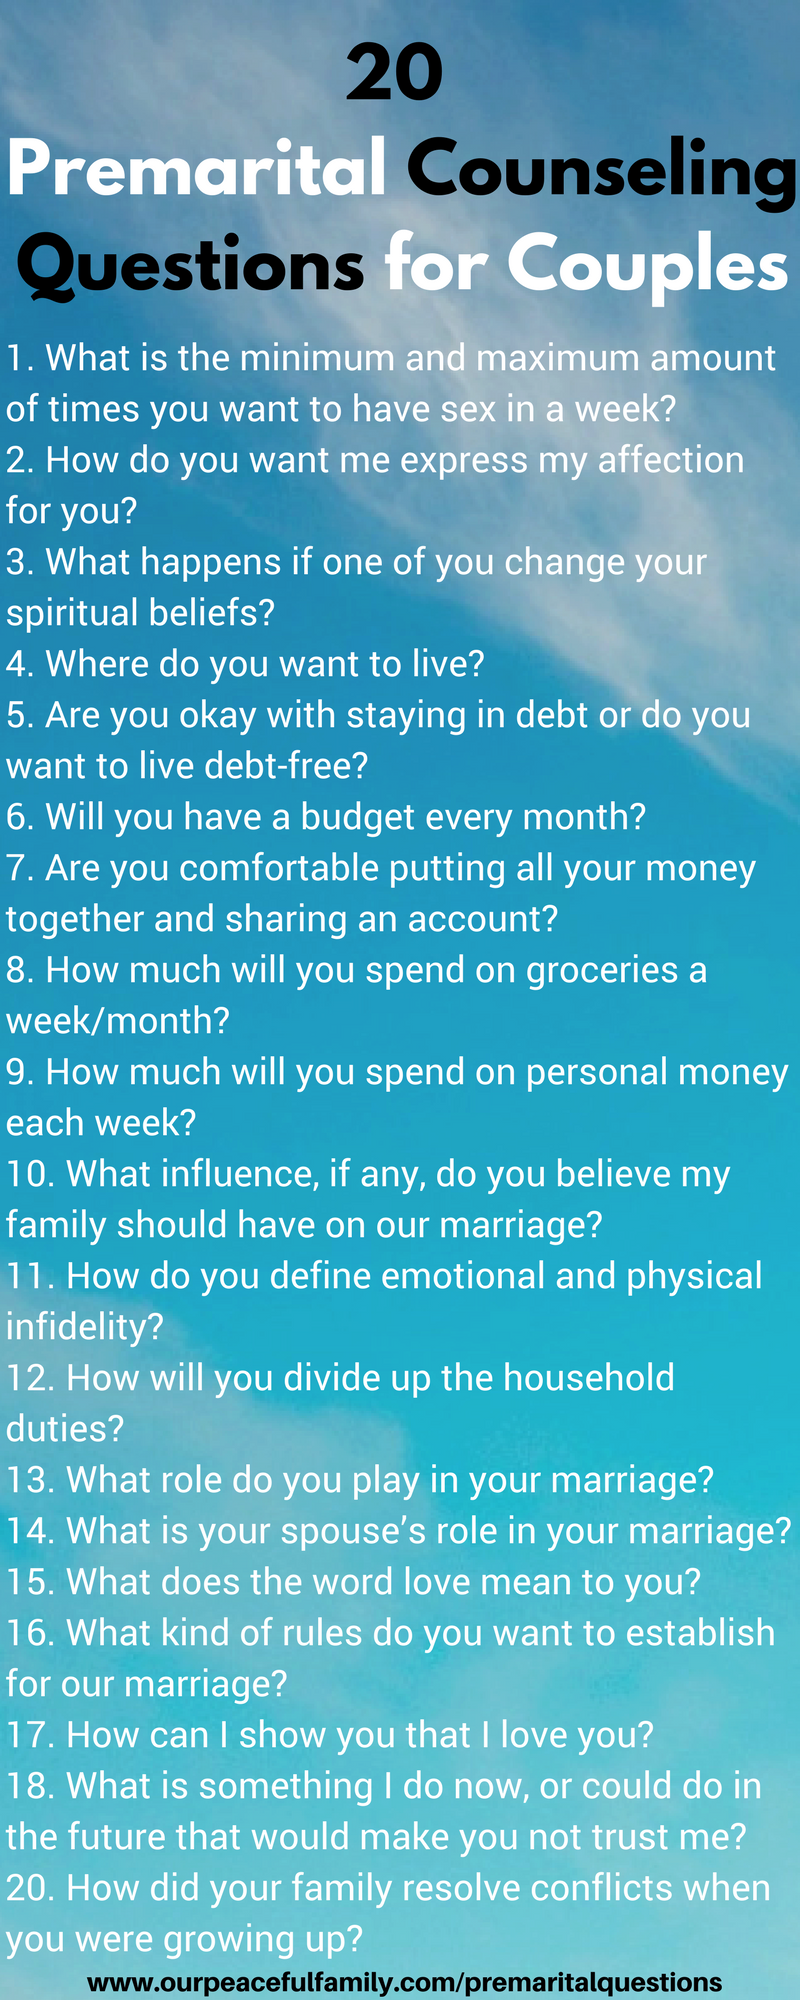 25 Premarital Counseling Questions Every Couple Must Discuss Before